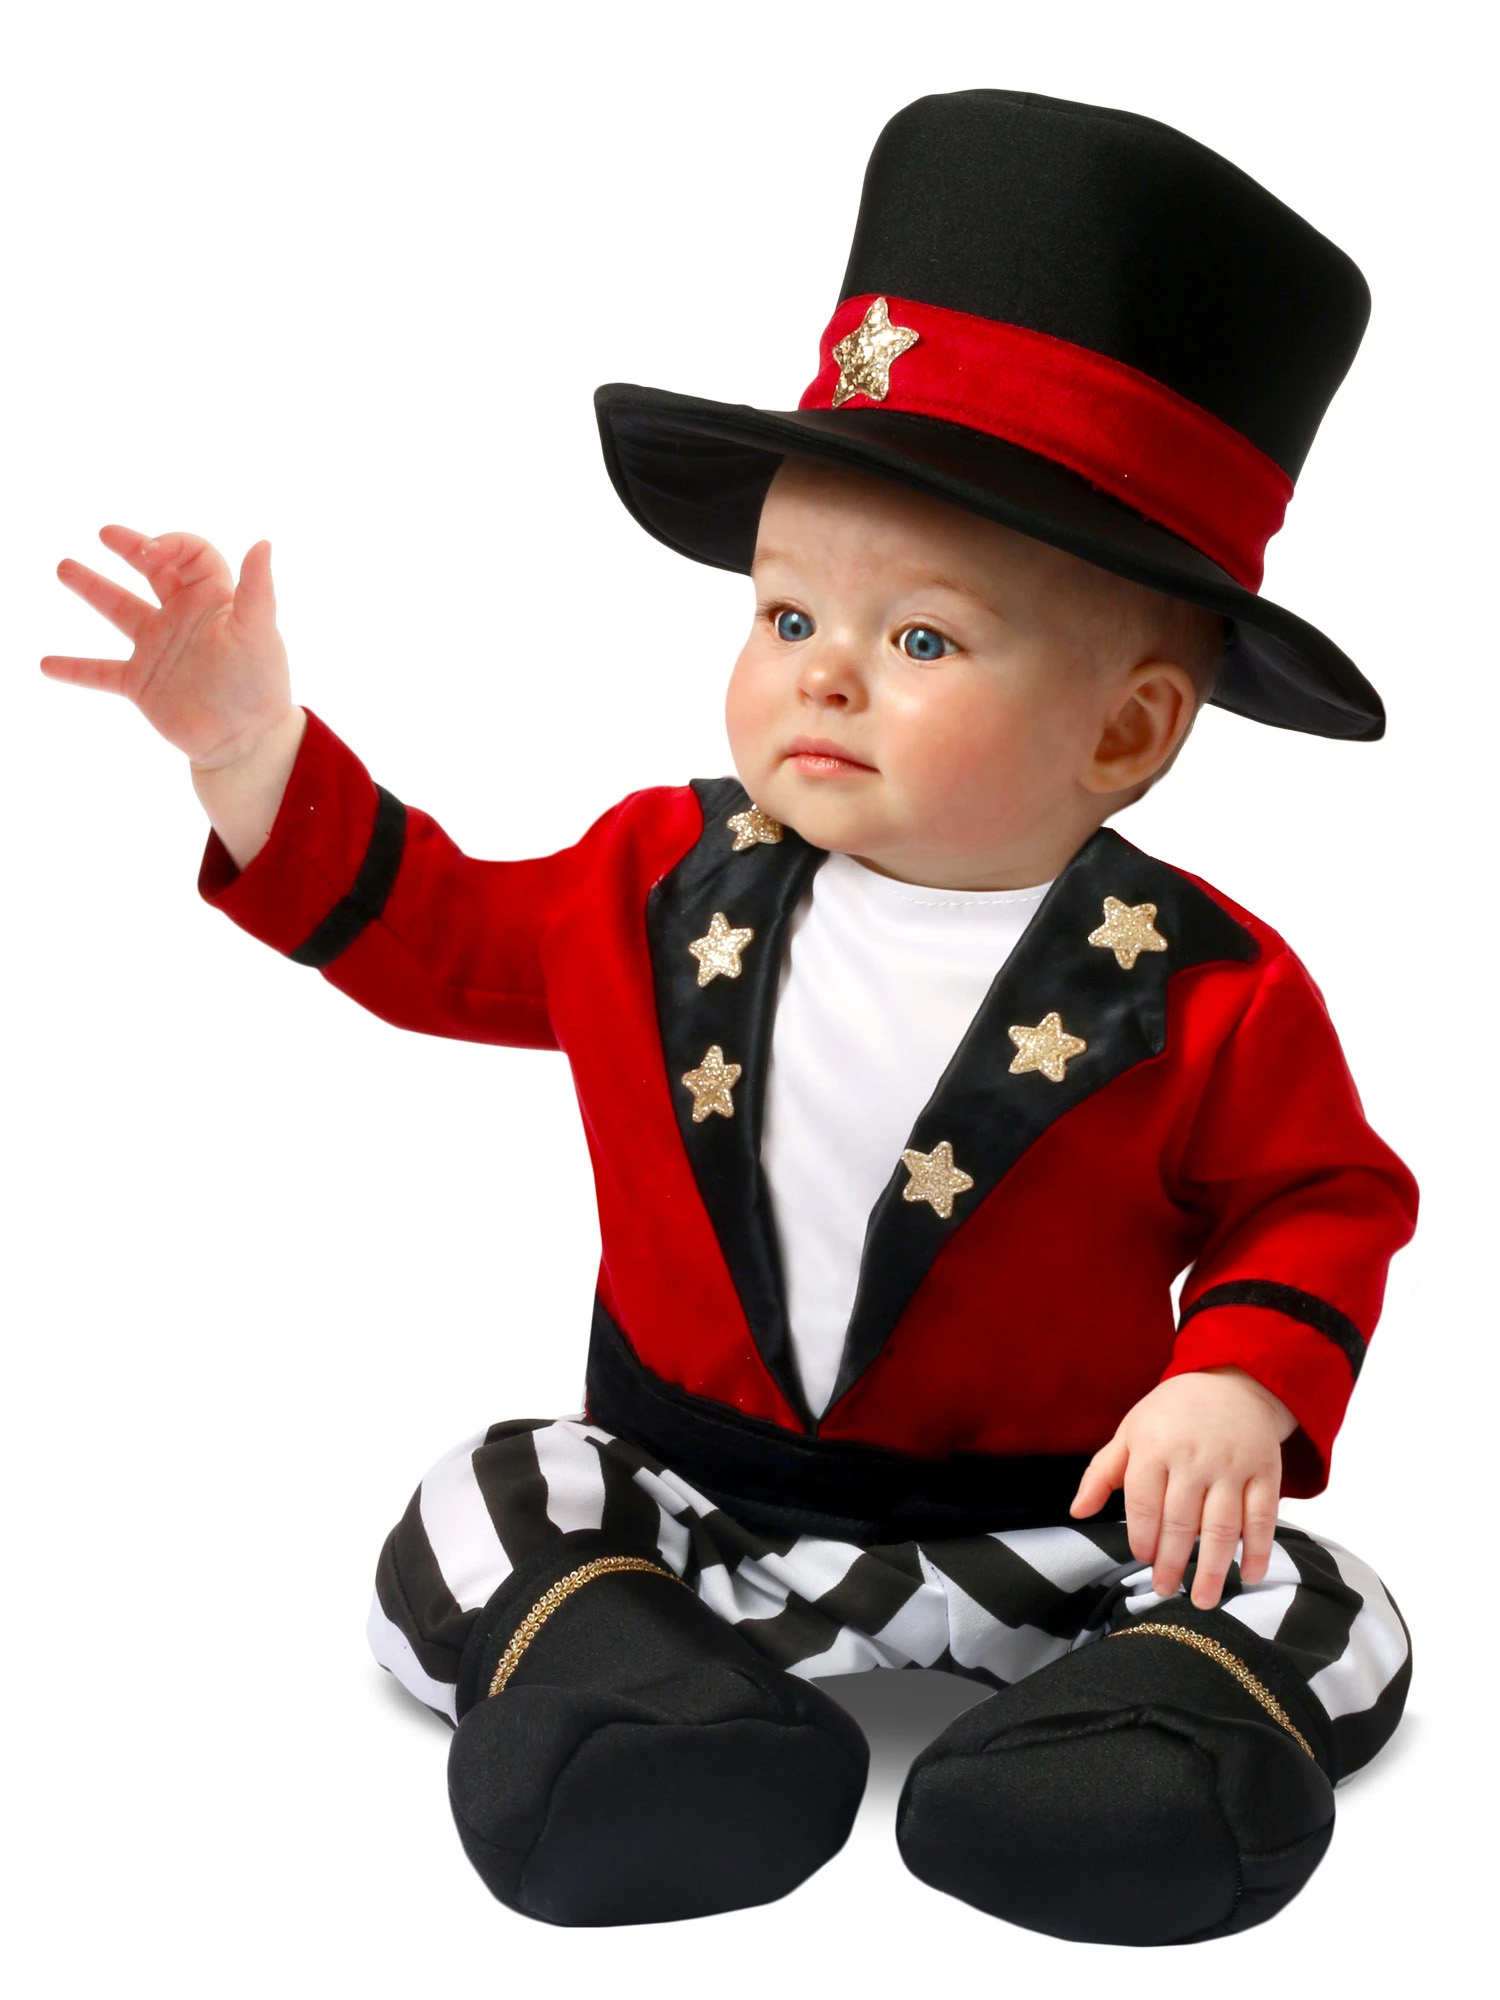 LIL RINGMASTER COSTUME FOR BABIES INFANTS BOYS